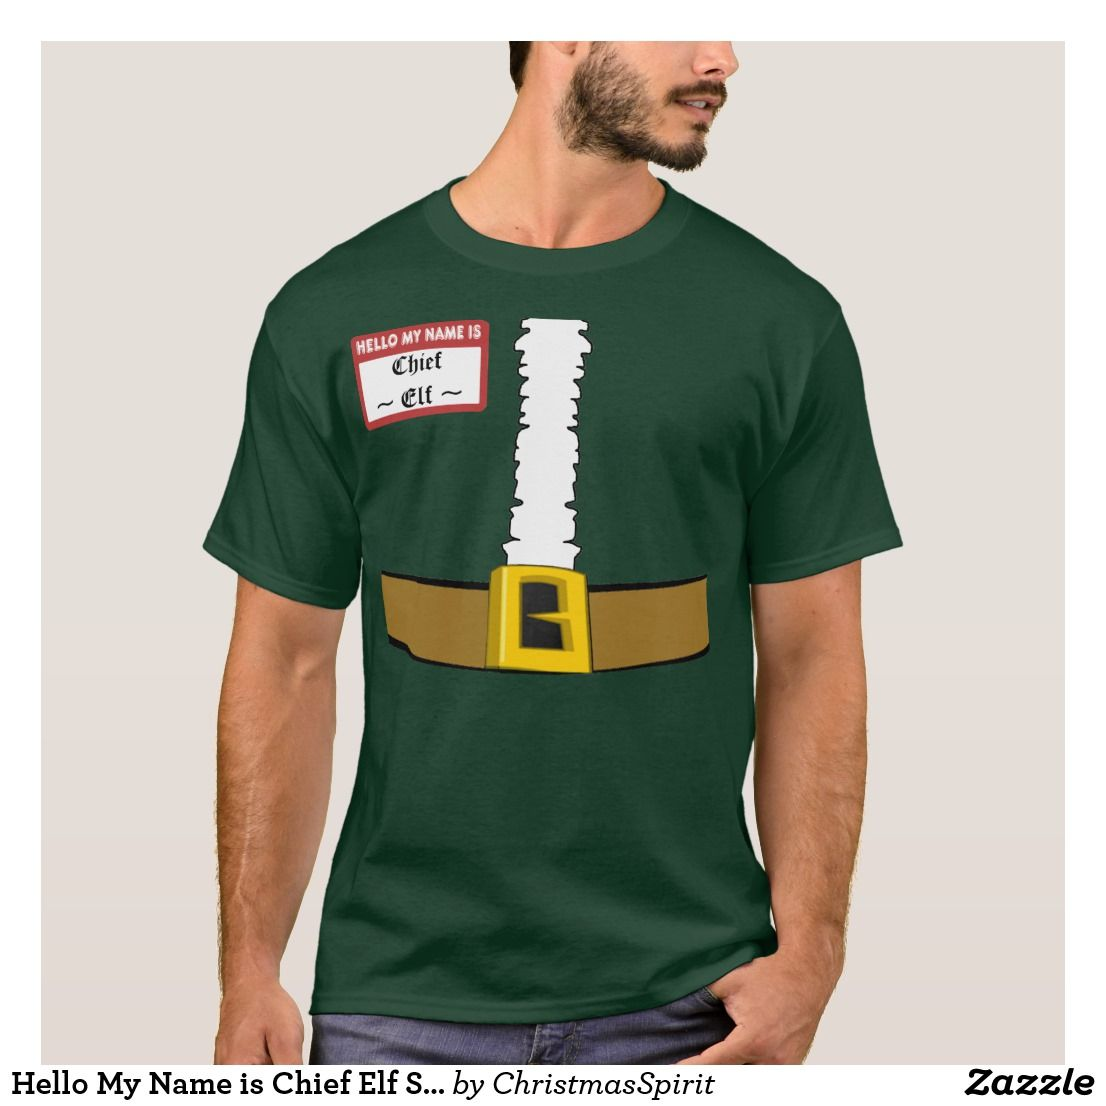 196dcfa0 Hello My Name is Chief Elf Suit Front Customize! T-Shirt, funny novelty tee  shirt, great Christmas gift idea, order yours today!